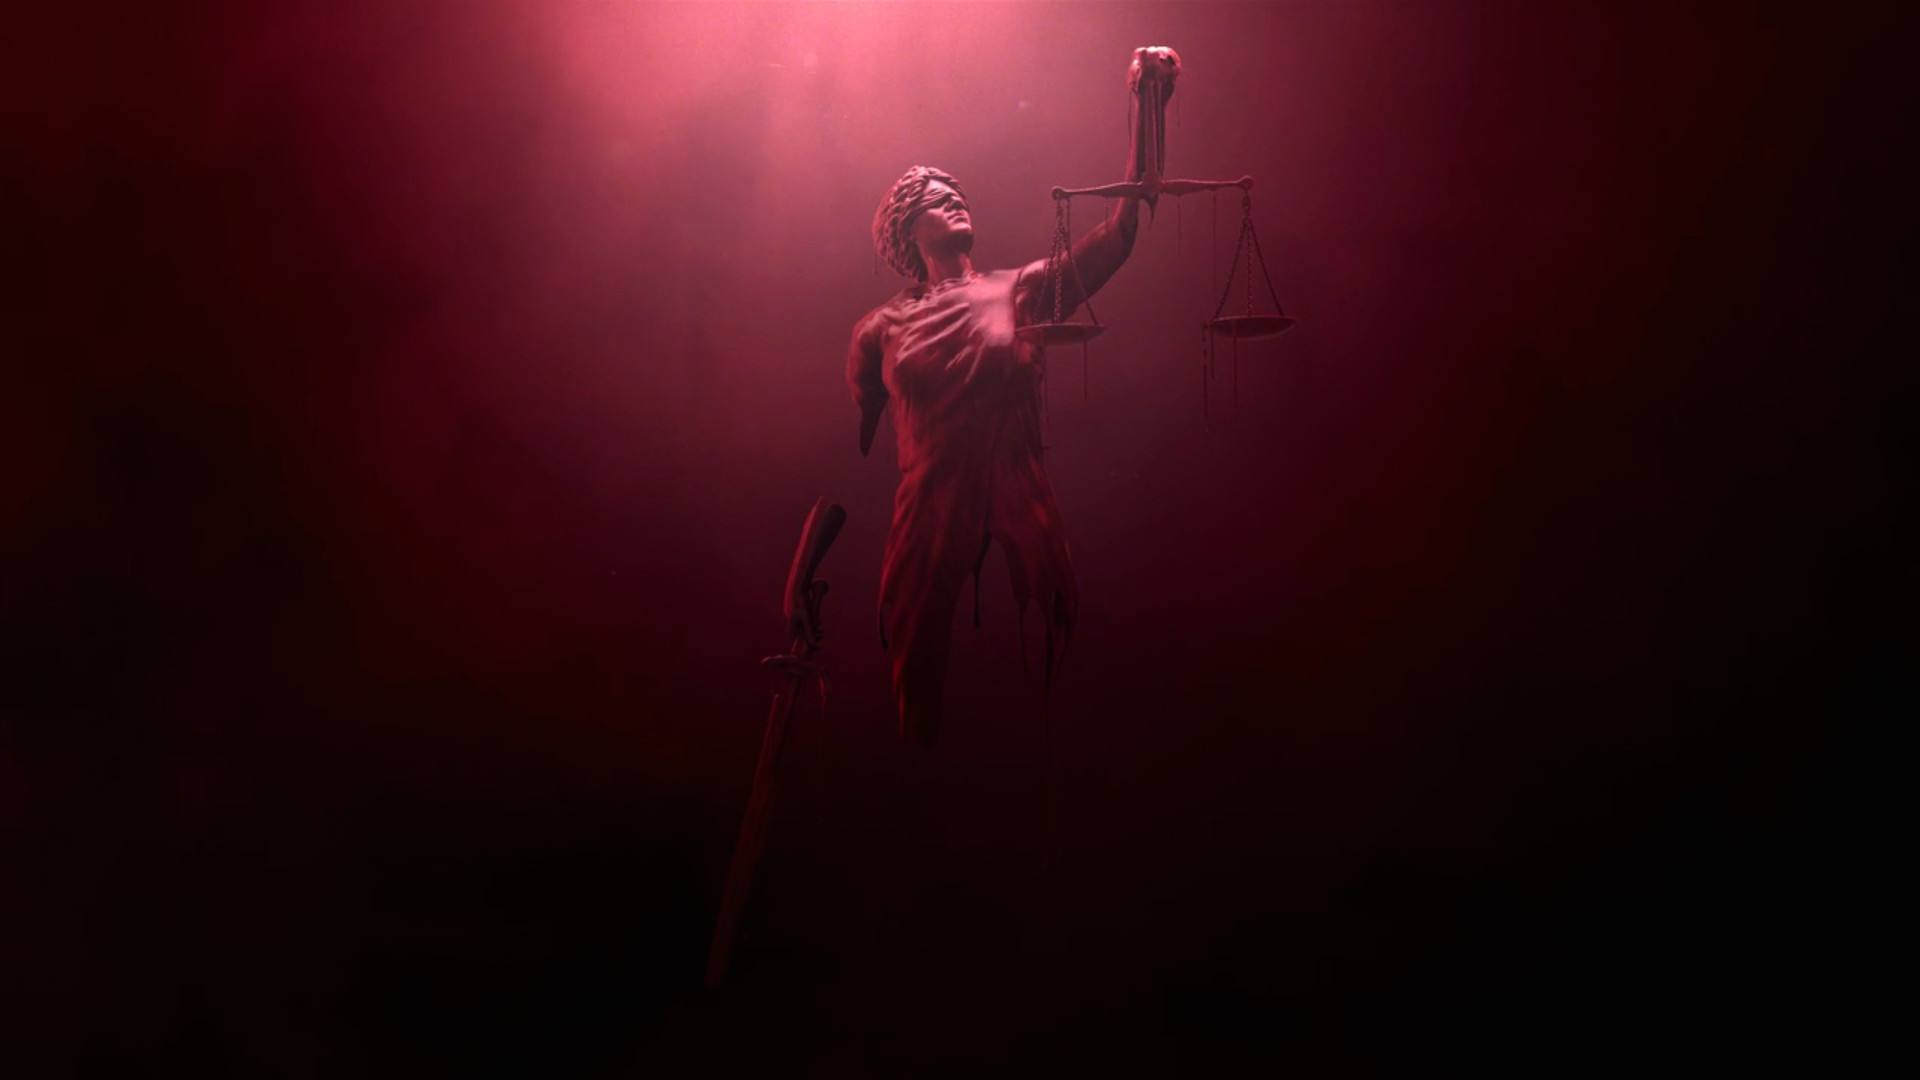 here is another one someone else posted of the intro showing Lady Justice.